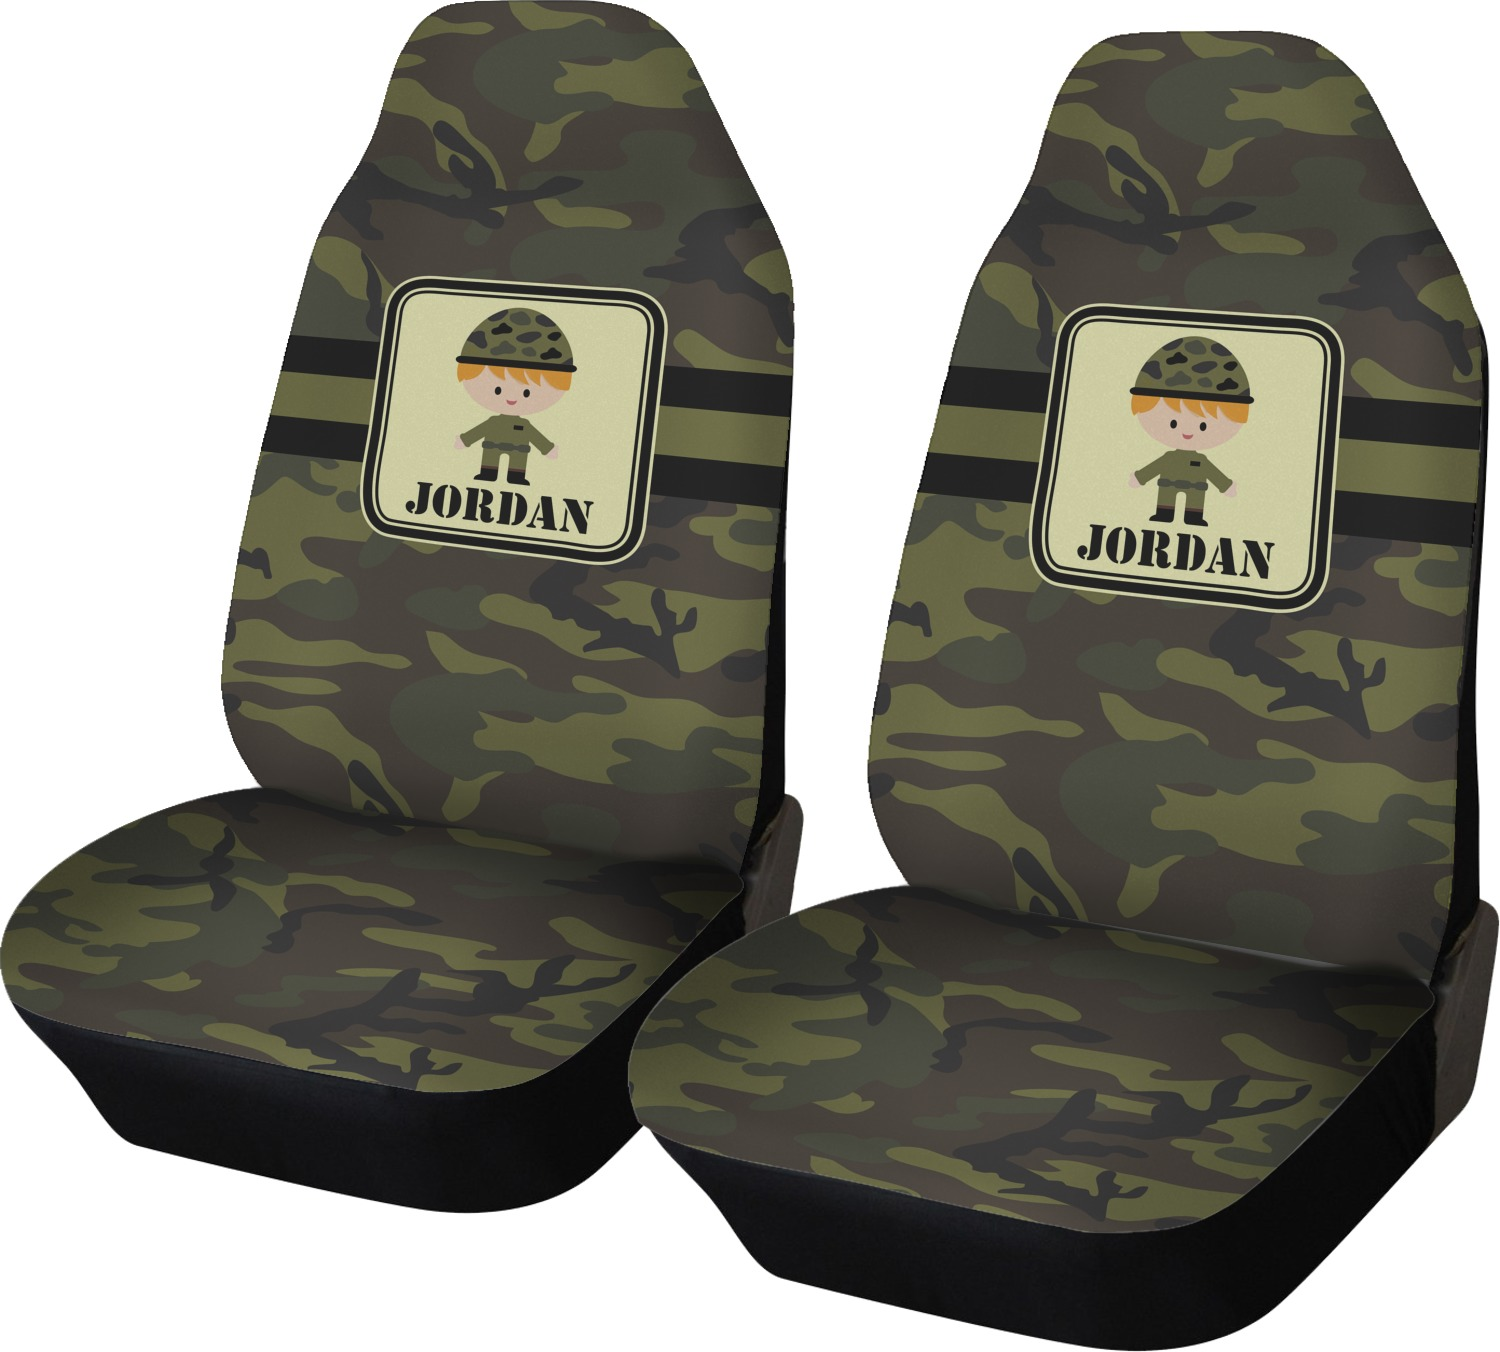 Green Camo Car Seat Covers Set Of Two Personalized